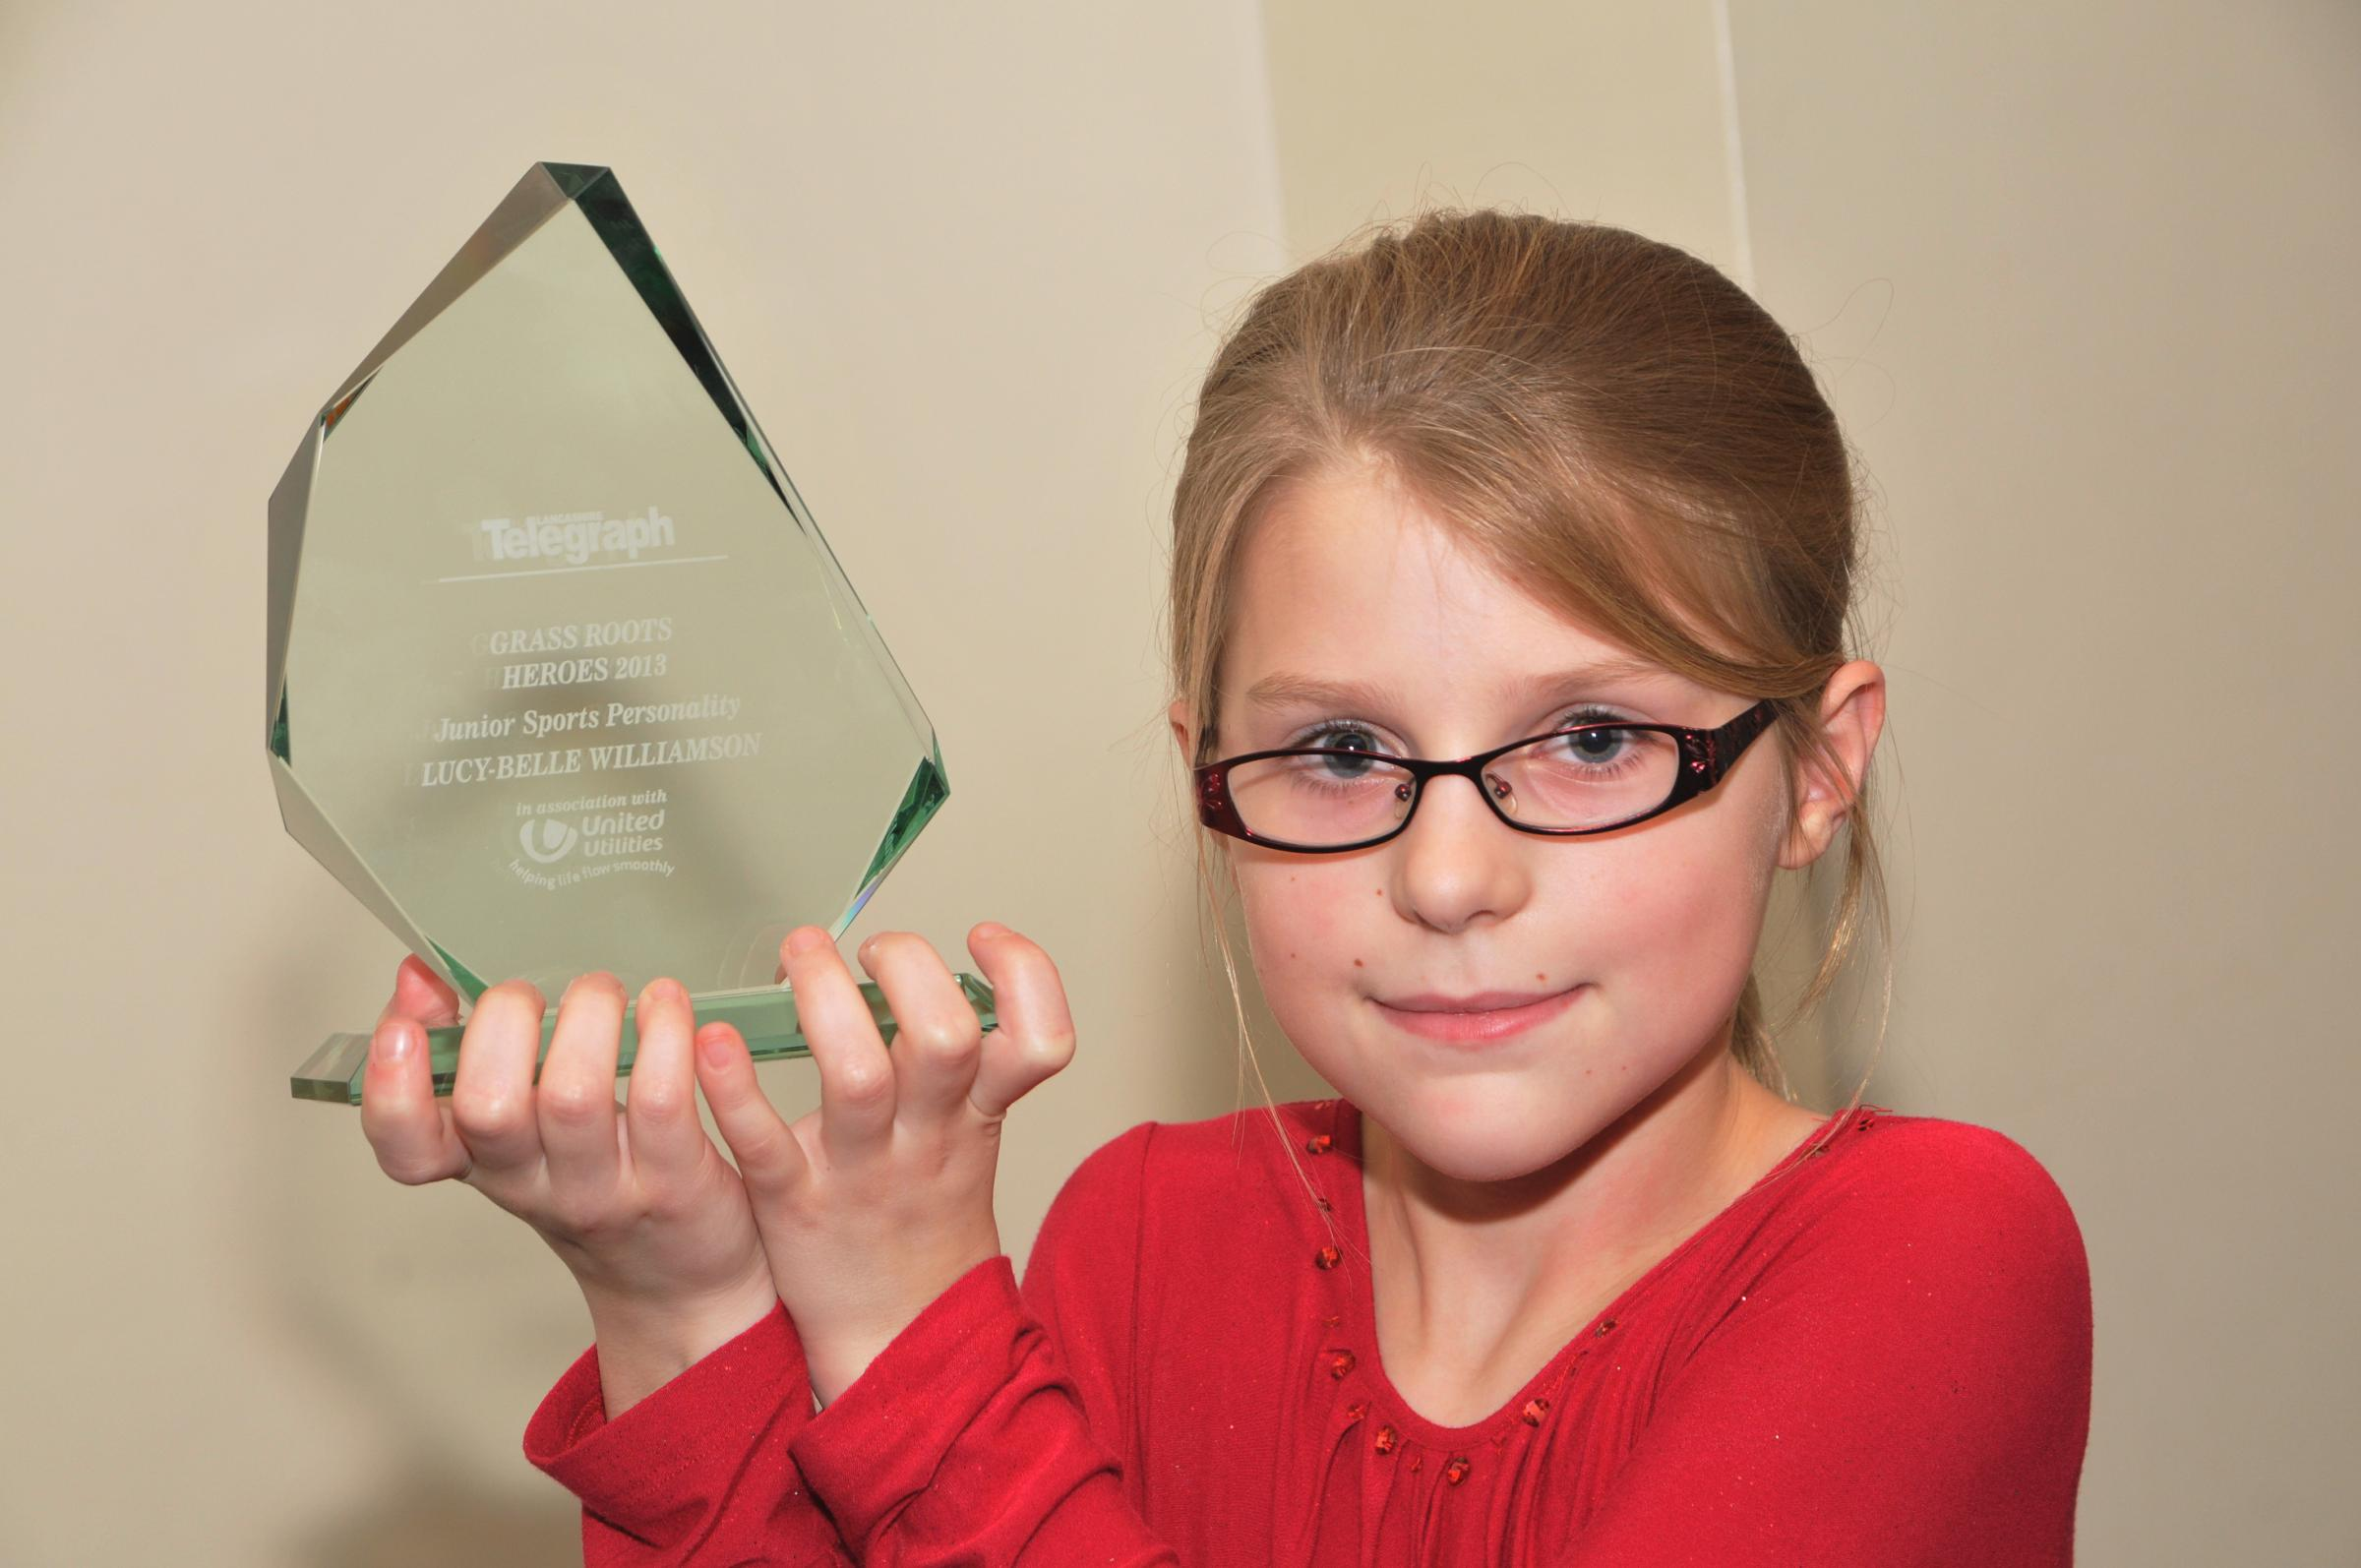 JUNIOR SPORTS PERSONALITY  Lucy-Belle Williamson